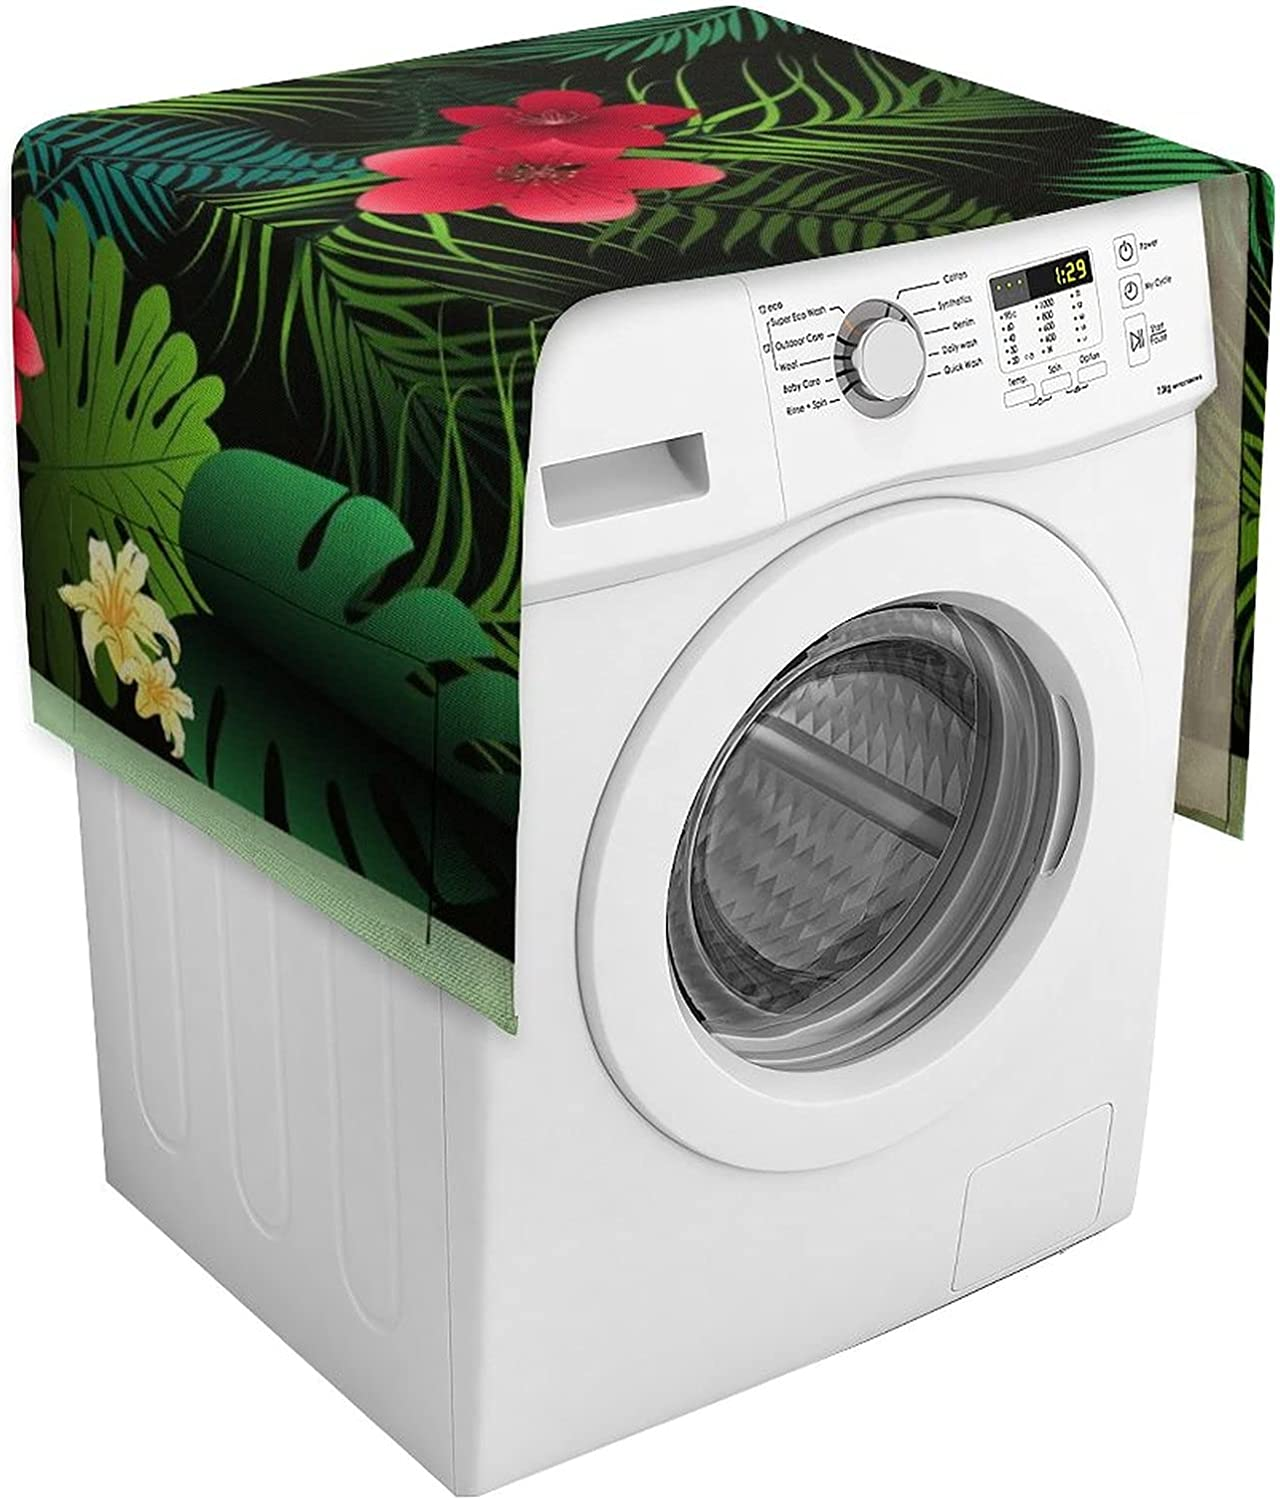 Multi-Purpose Washing Machine Covers Appliance Popular product Protector Washer Limited Special Price